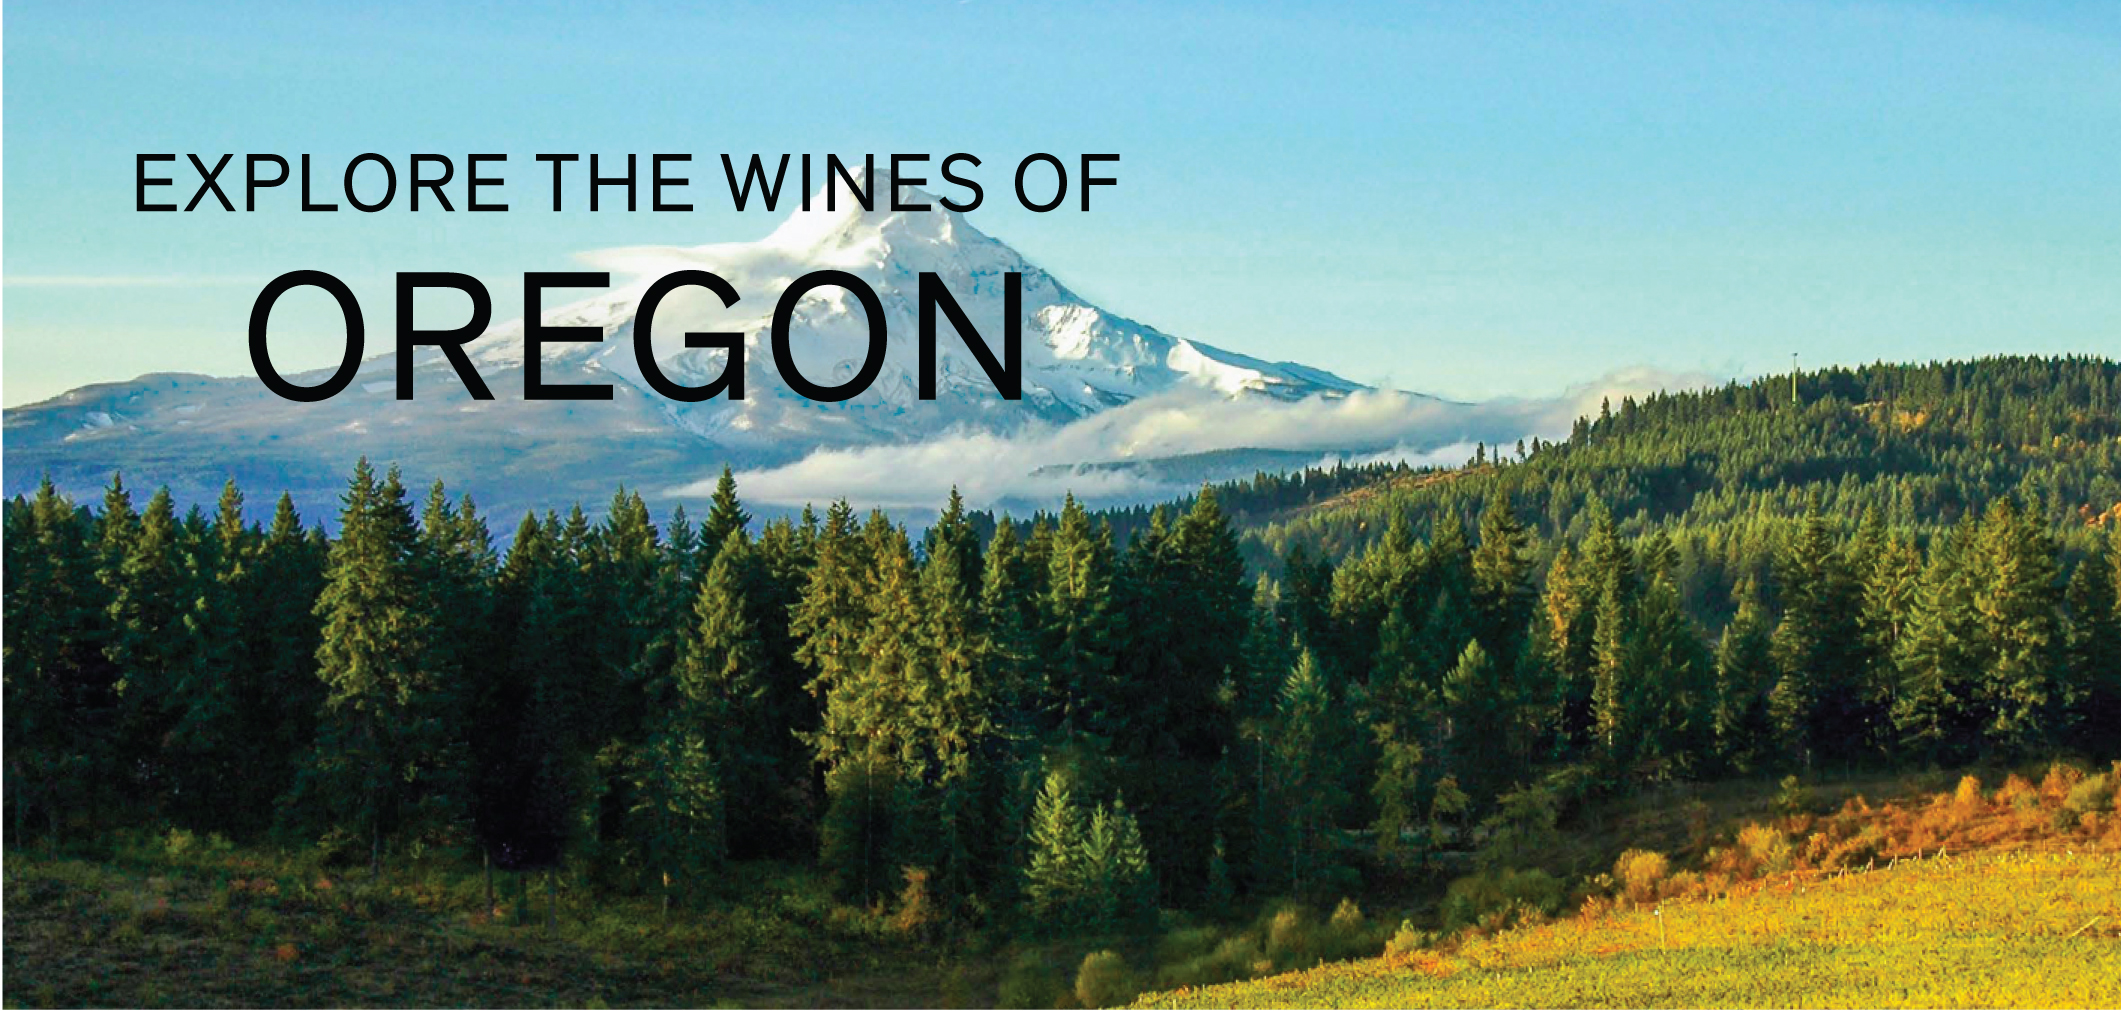 Explore the Wines of Oregon